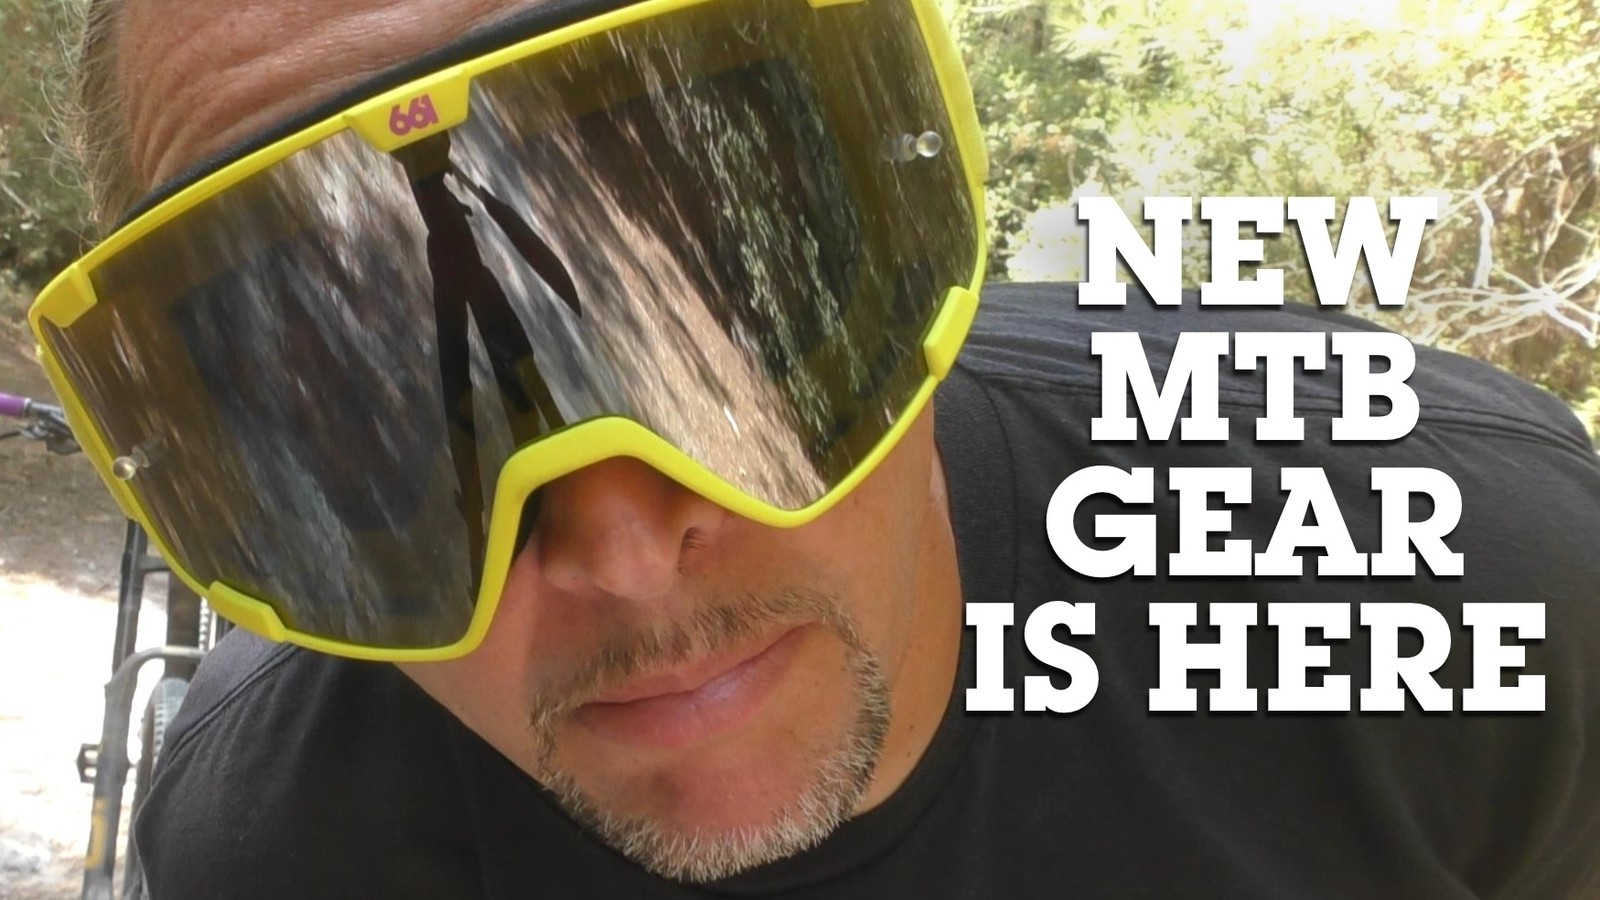 New Tires, Pedals and Goggles - Vital Gear Show